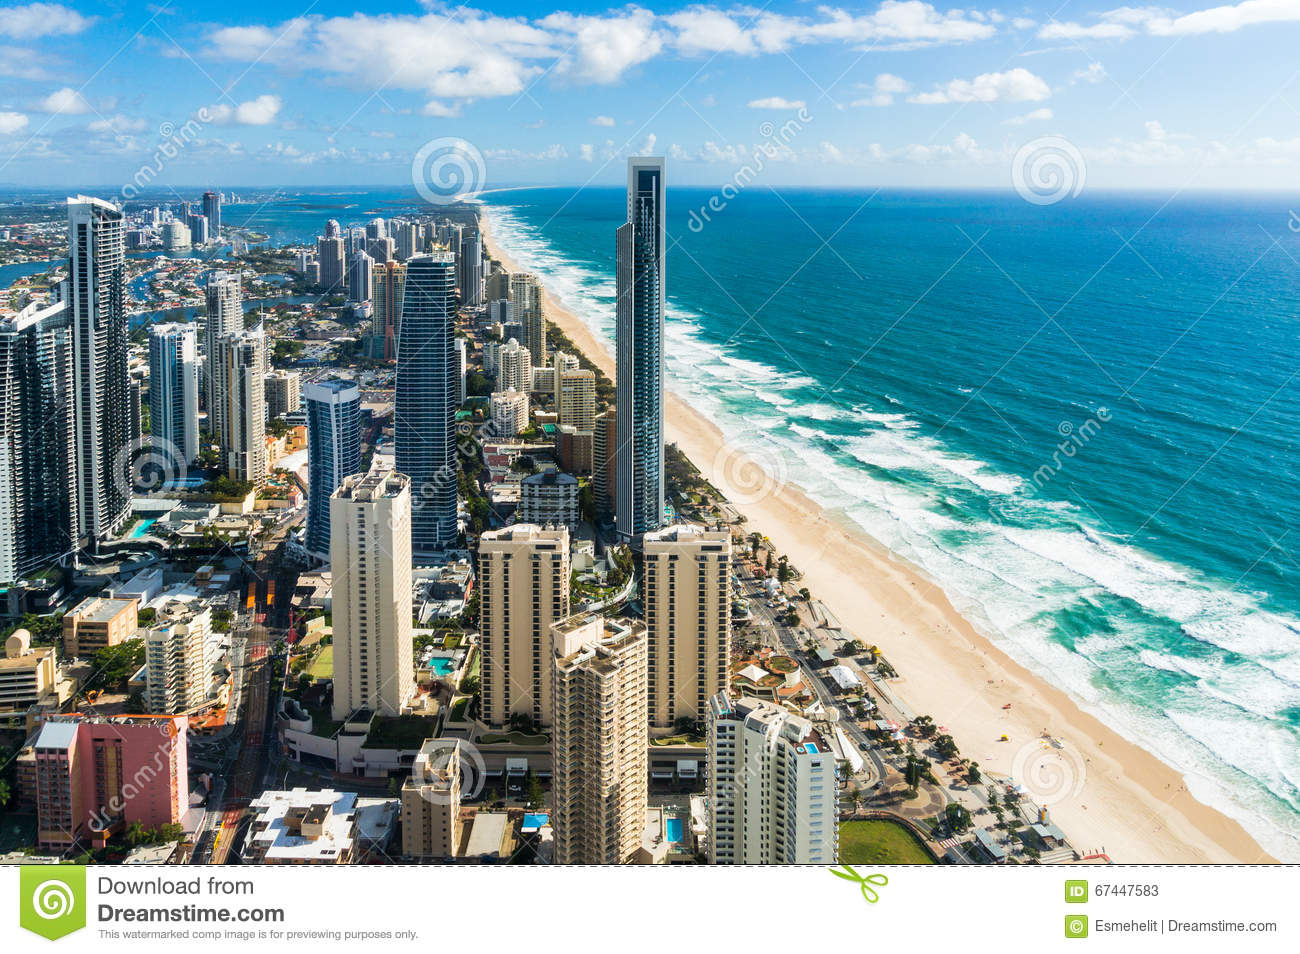 Welcome to Club Surfers Apartments - Surfers Paradise